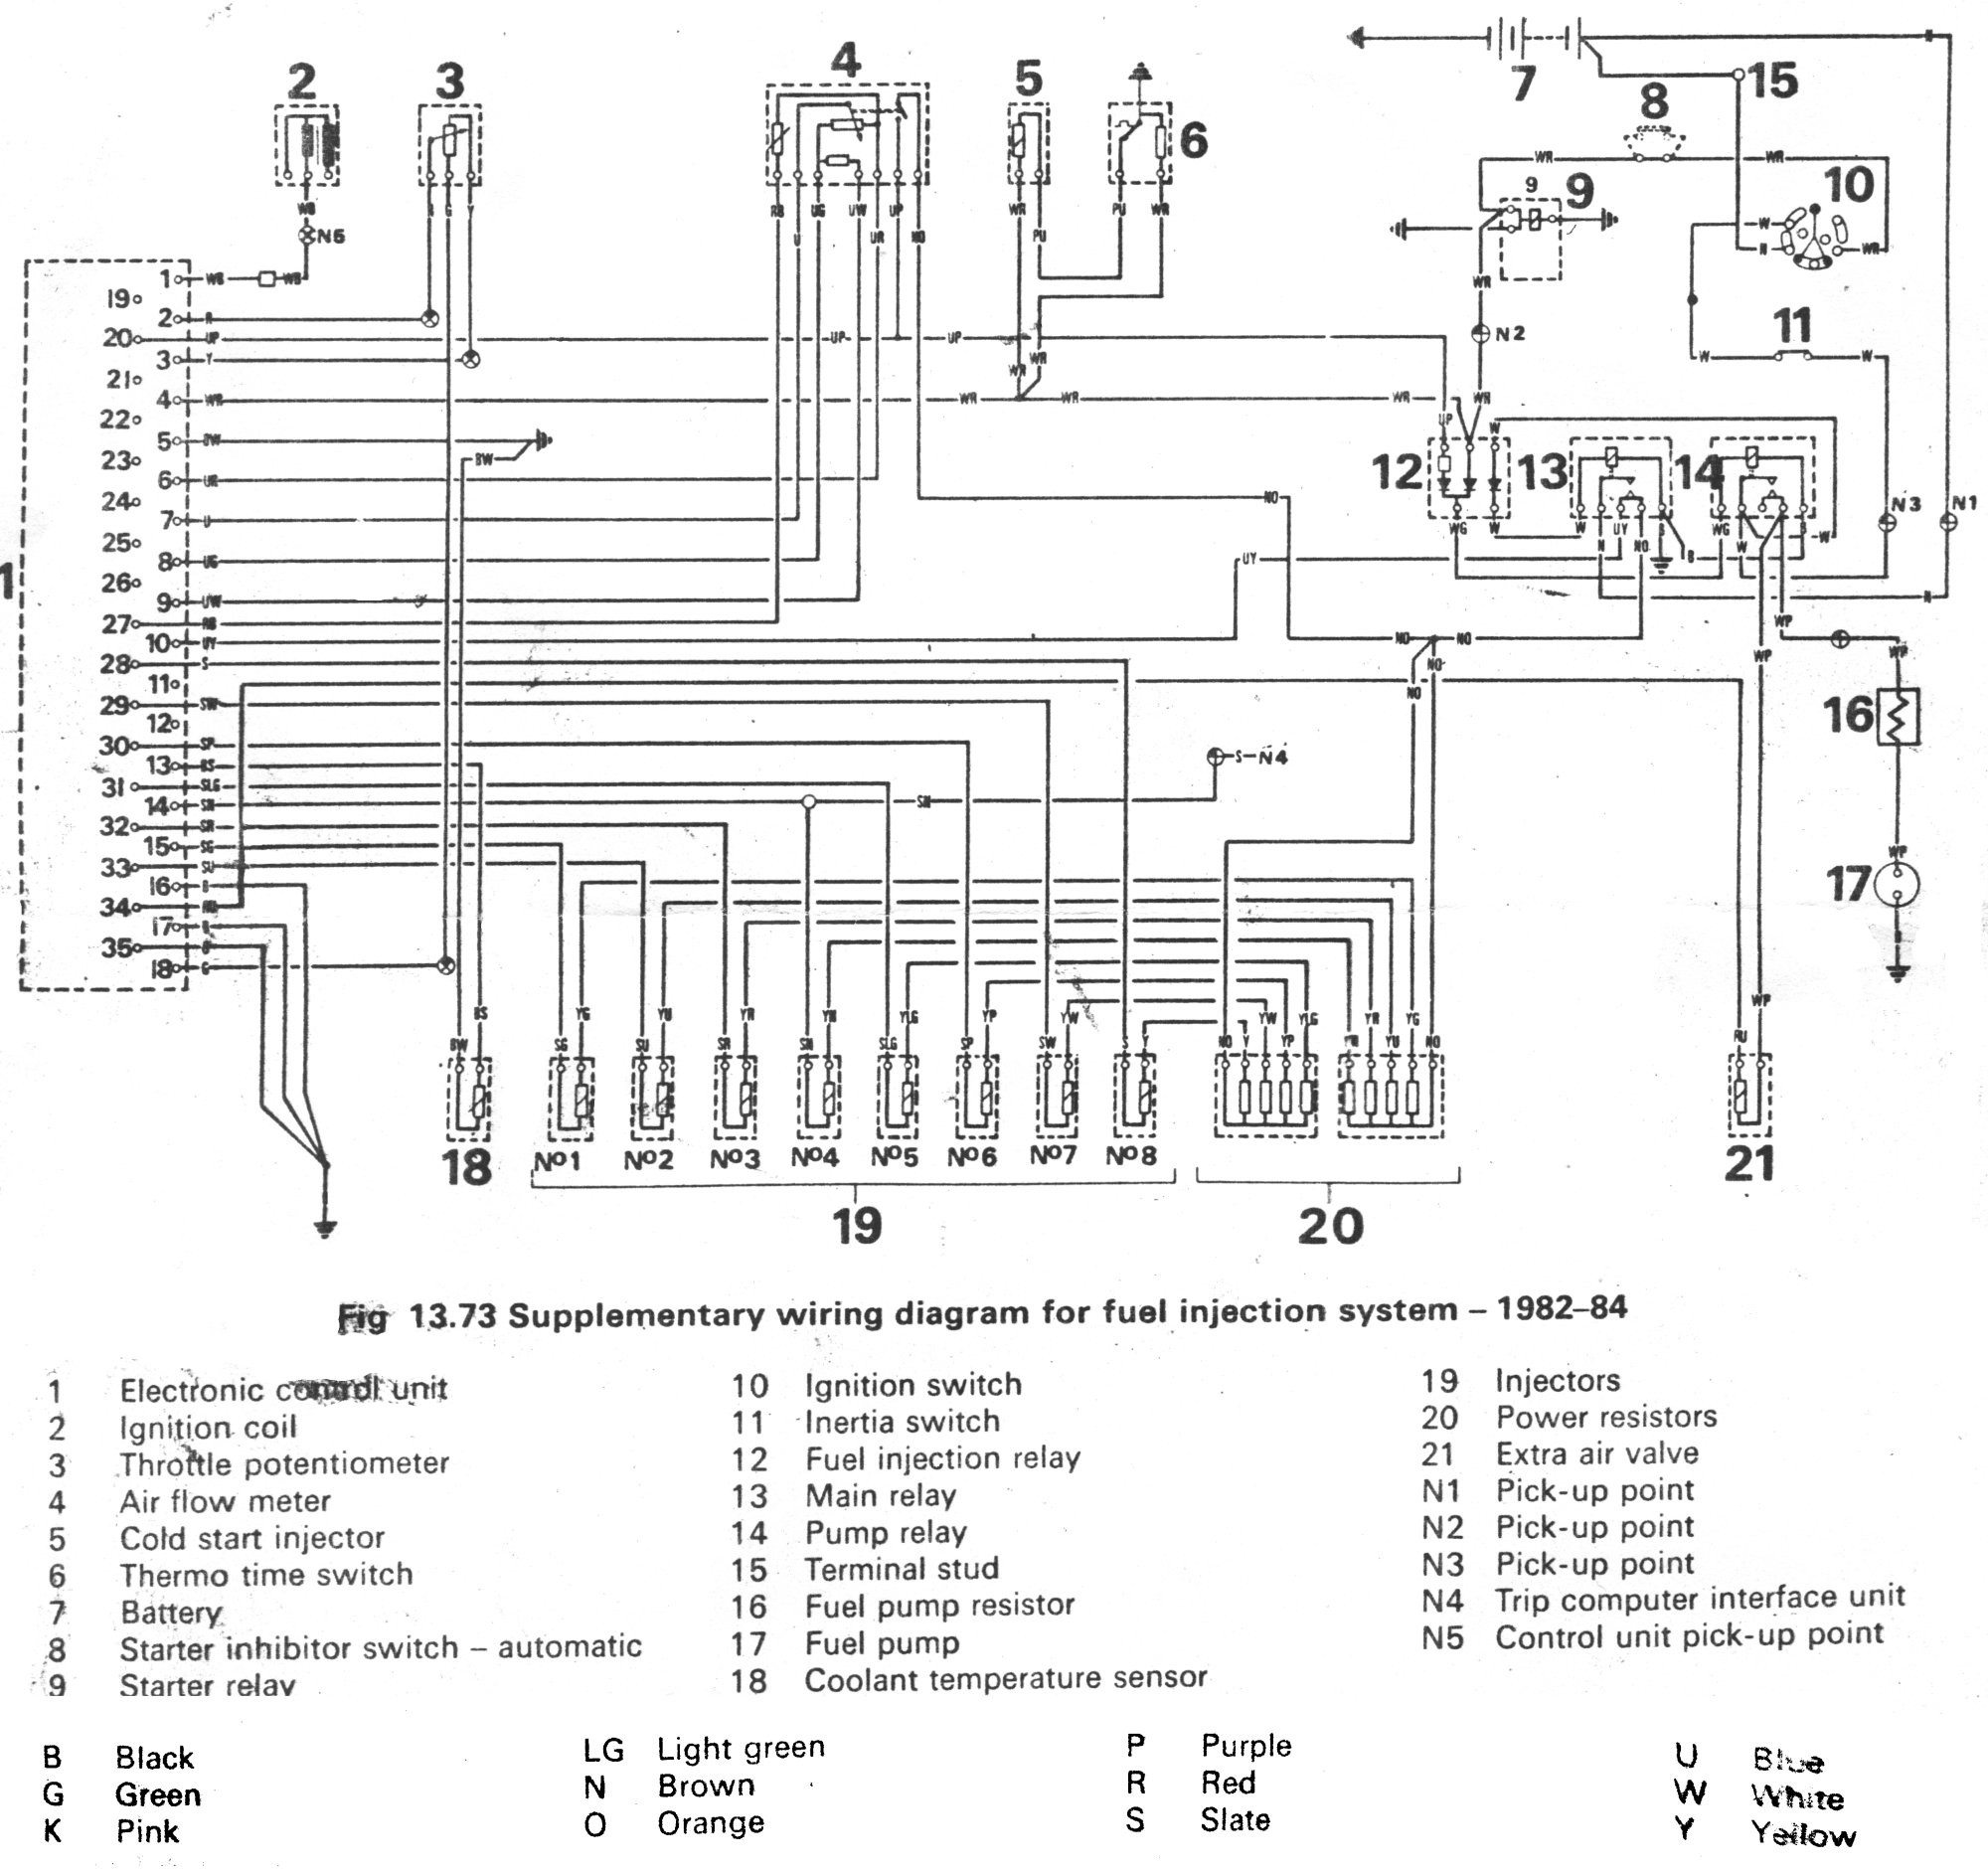 Ford 5 4 L Engine Diagram 2 4r100 Transmission Valve Body Post Ignition Switch Wiring 1987 Ranger 20 L4 Gas